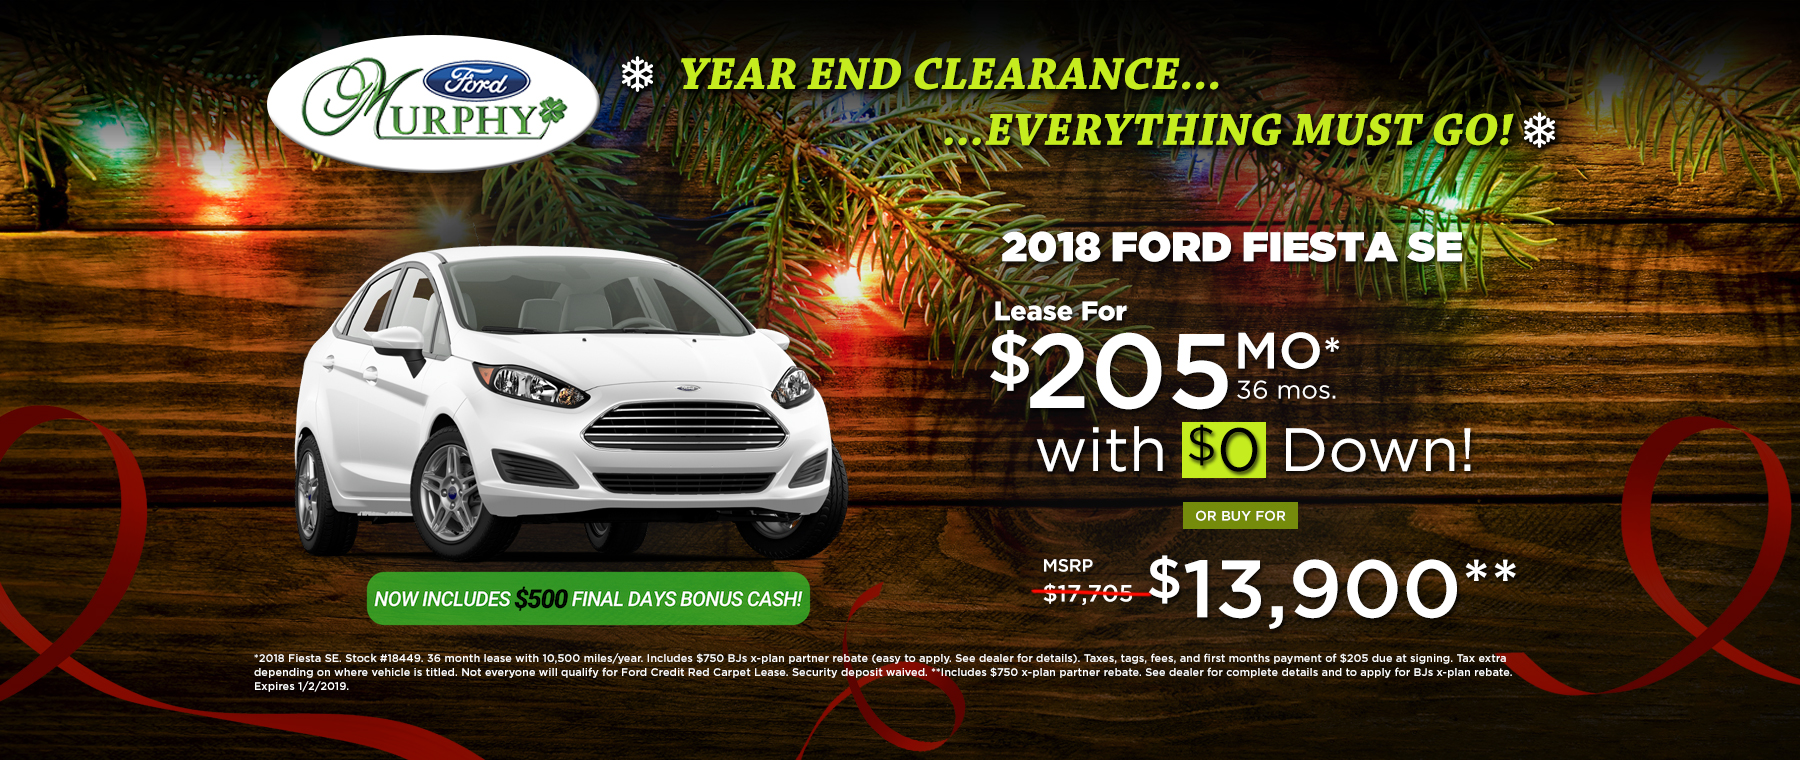 2018 Ford Fiesta SE December Lease Offer